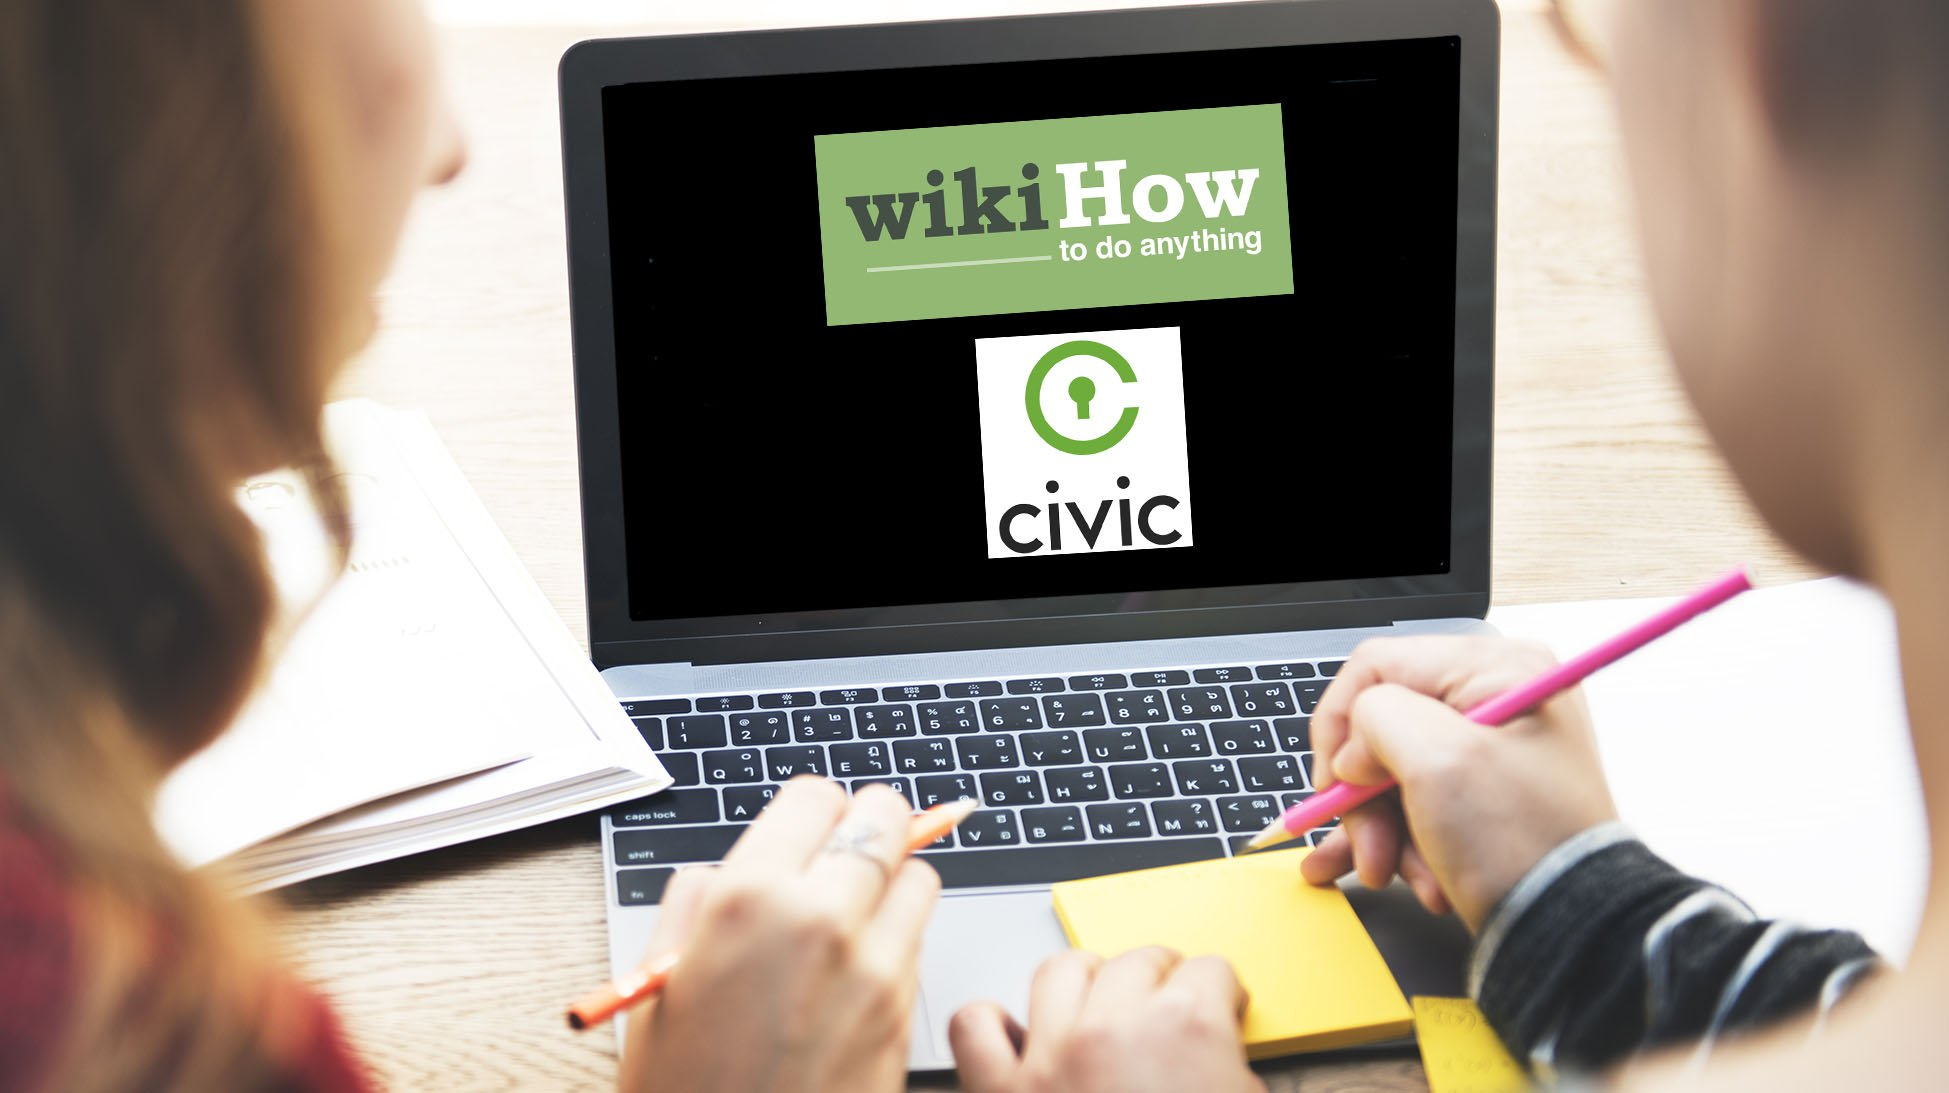 WikiHow Users Can Now Secure Their Online Identities with Civic